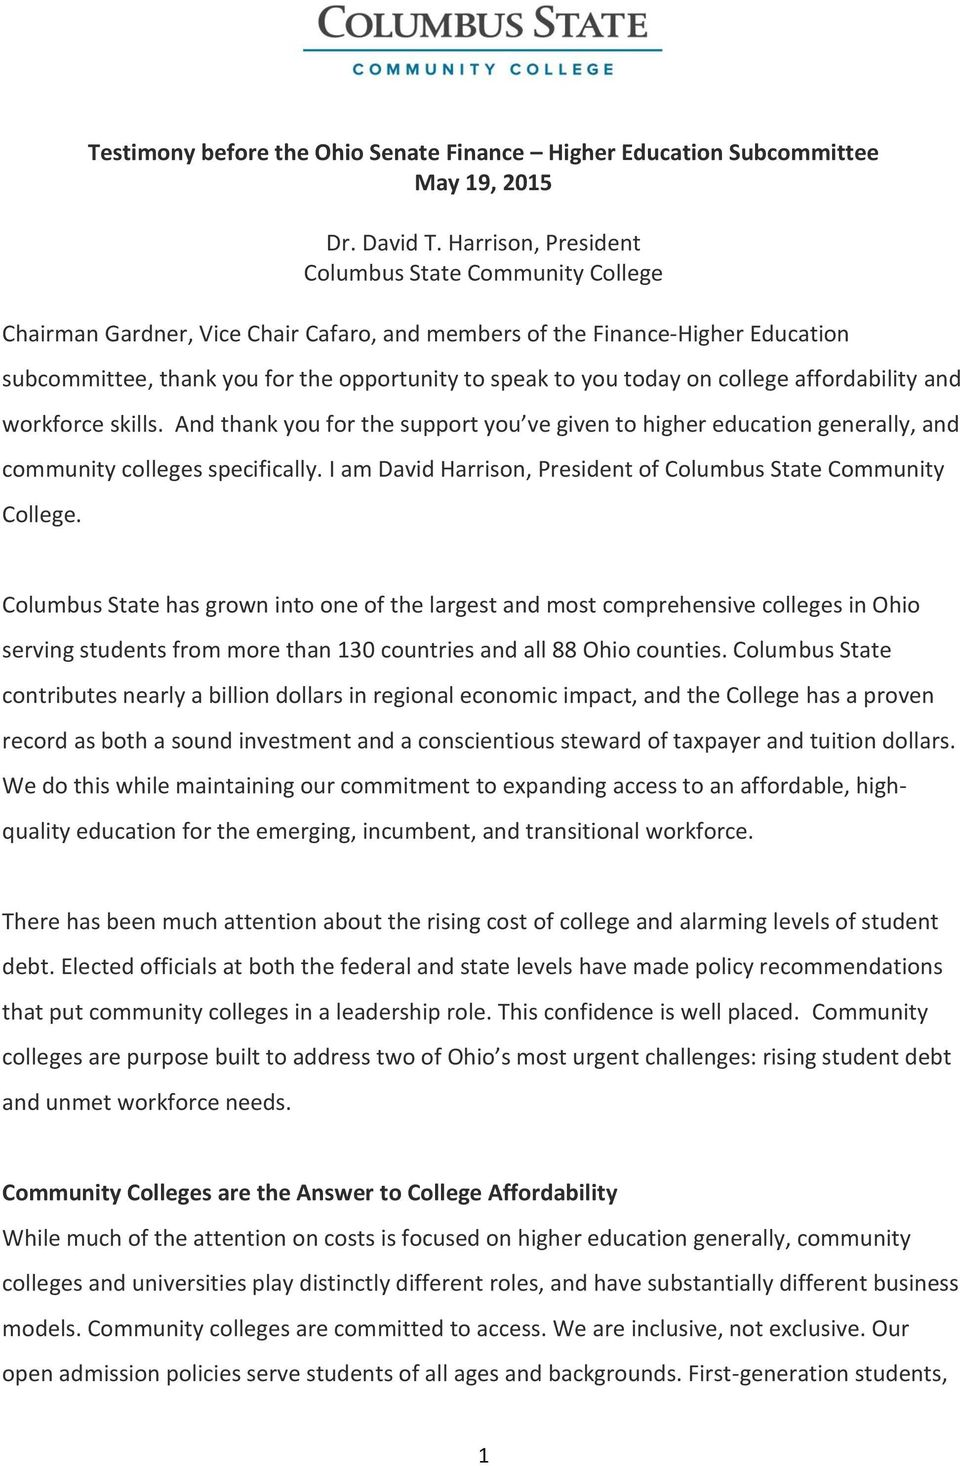 on college affordability and workforce skills. And thank you for the support you ve given to higher education generally, and community colleges specifically.